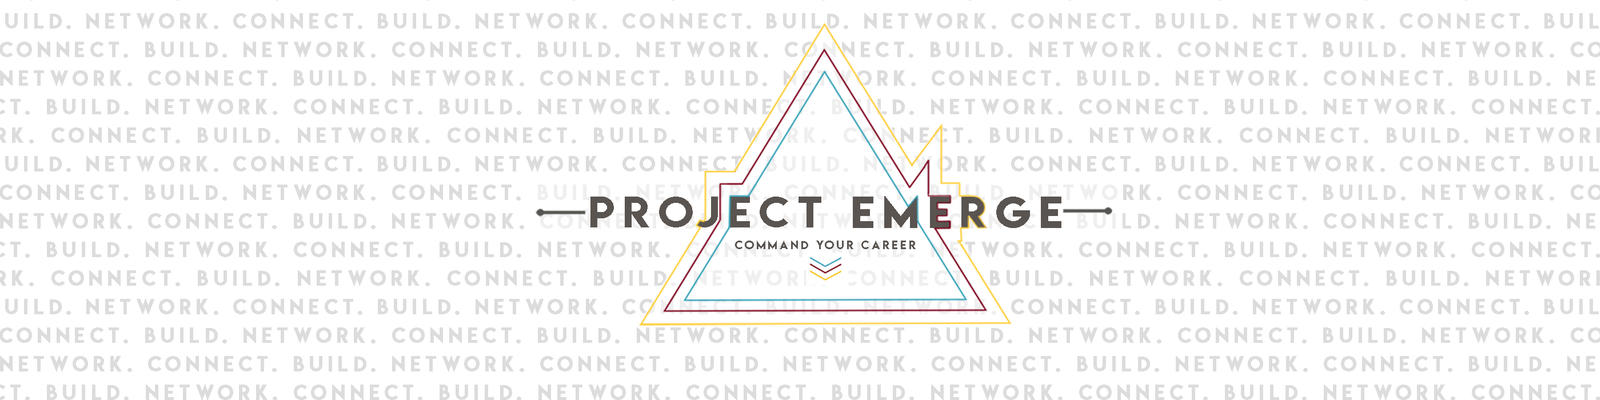 Project Emerge